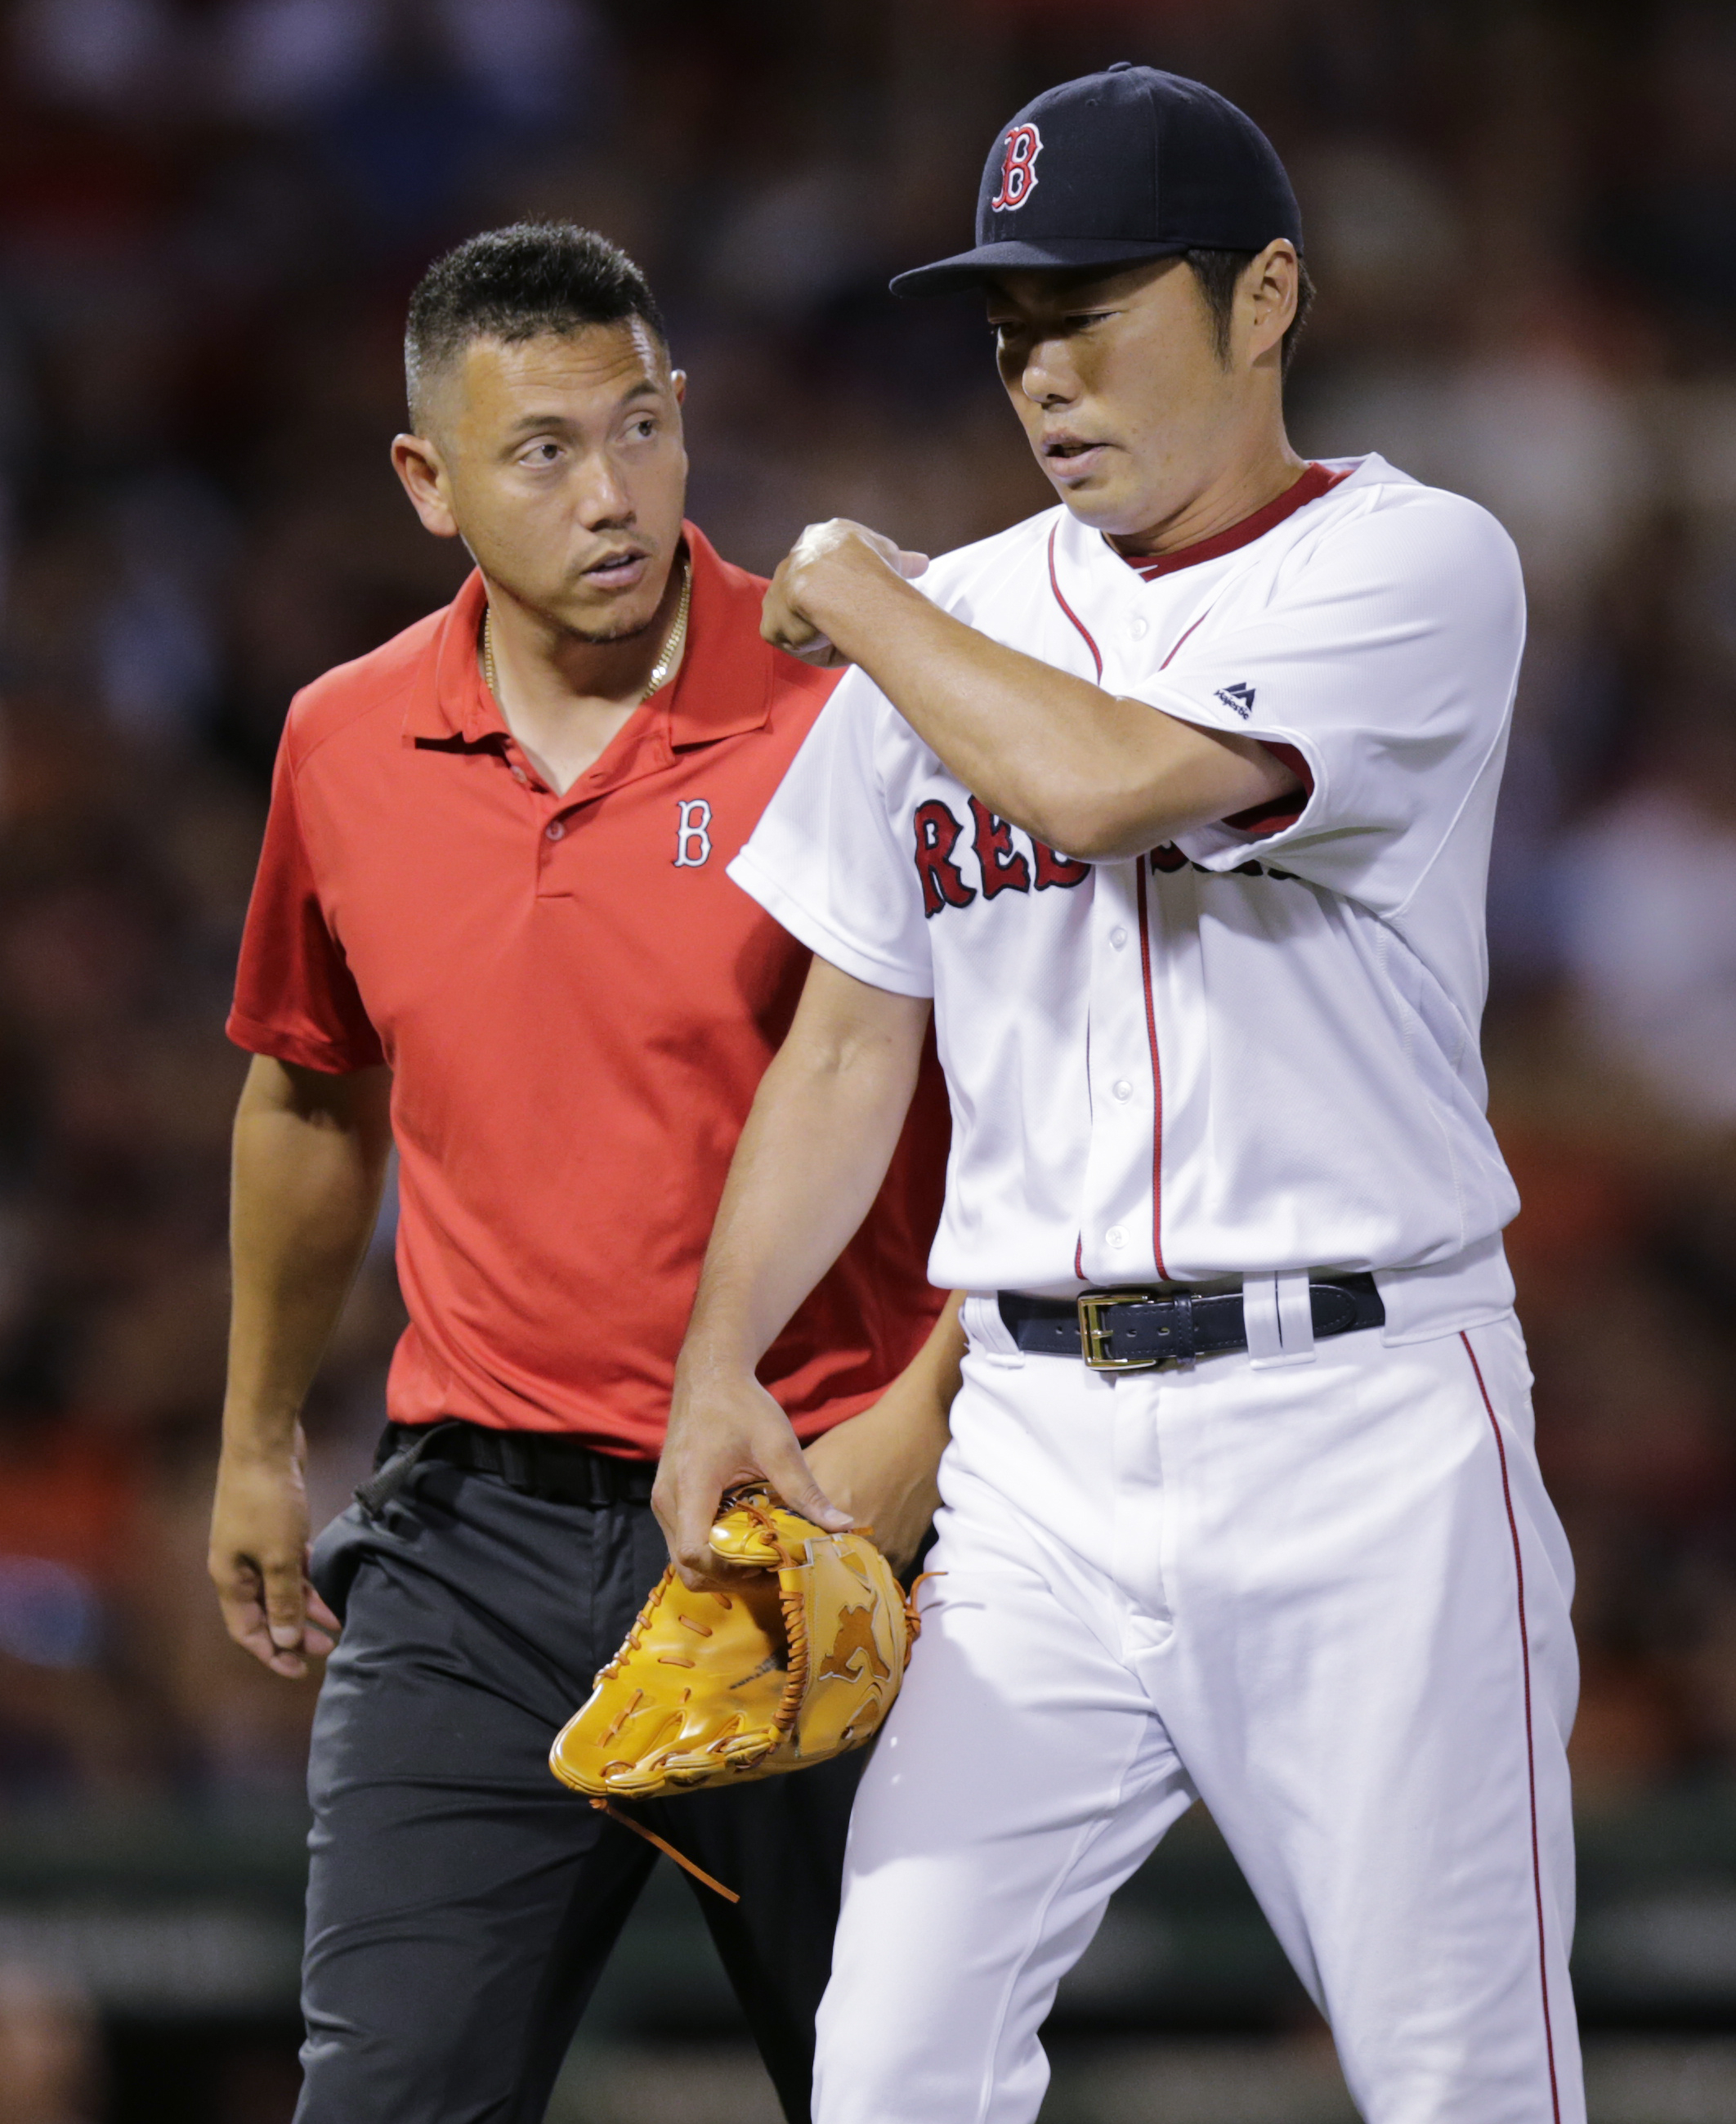 Boston Red Sox relief pitcher Koji Uehara is escorted to the dugout after an apparent injury during the ninth inning of a baseball game against the San Francisco Giants at Fenway Park, Tuesday, July 19, 2016, in Boston. (AP Photo/Charles Krupa)